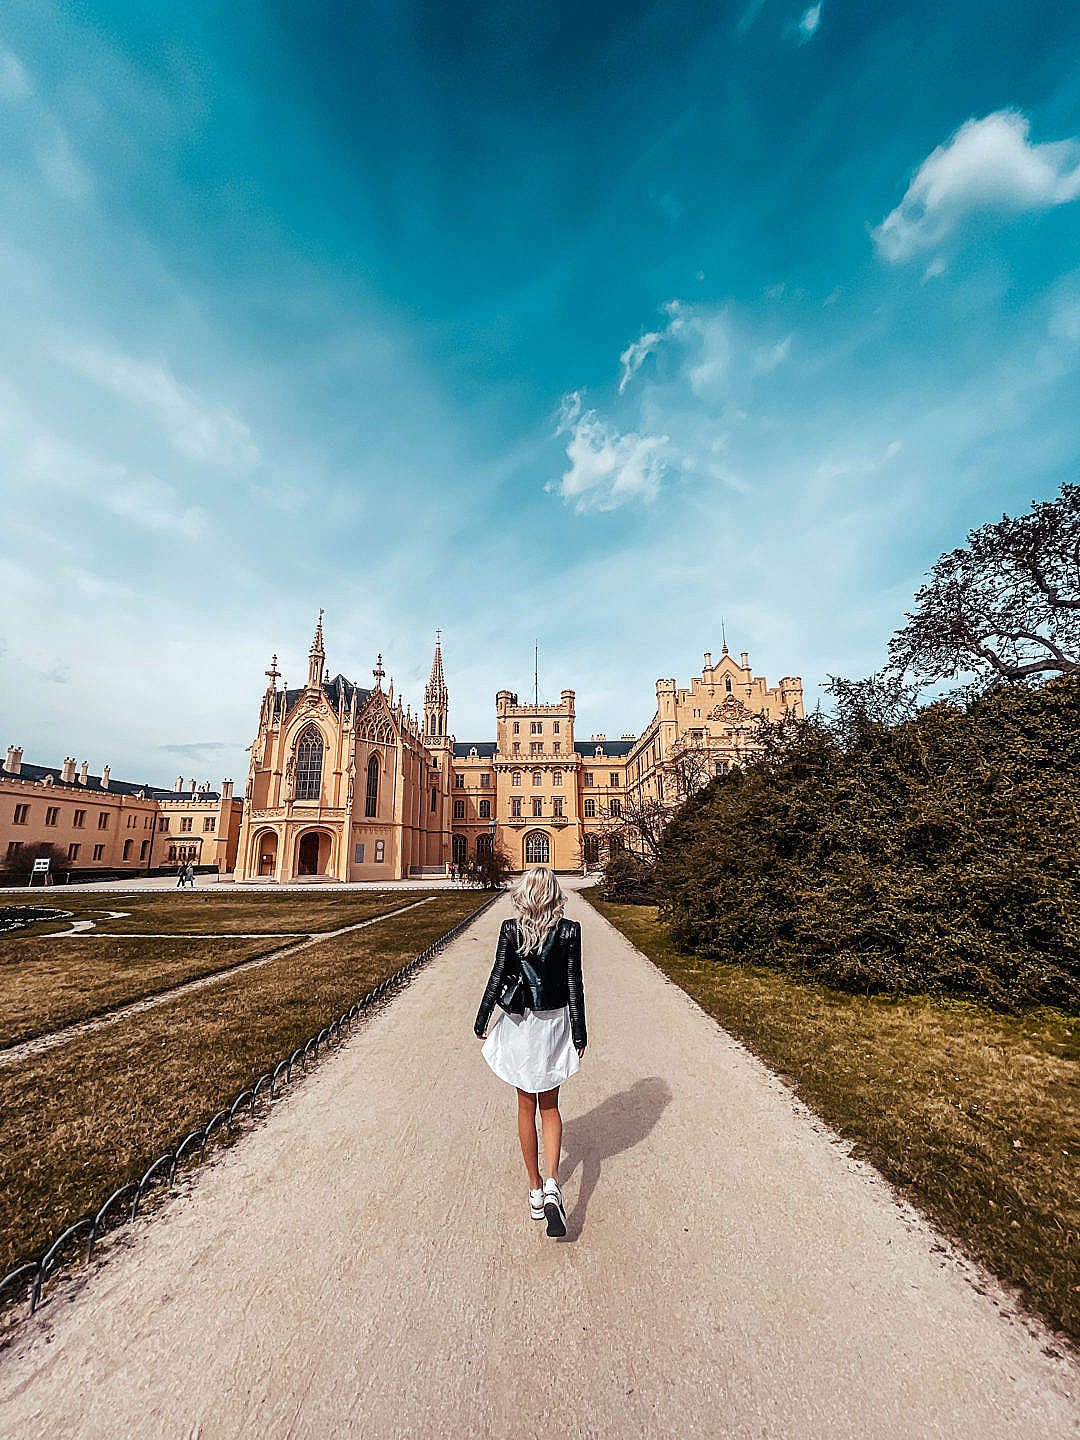 Download Woman Walking in Lednice Park to Visit Lednice Castle, Czechia FREE Stock Photo